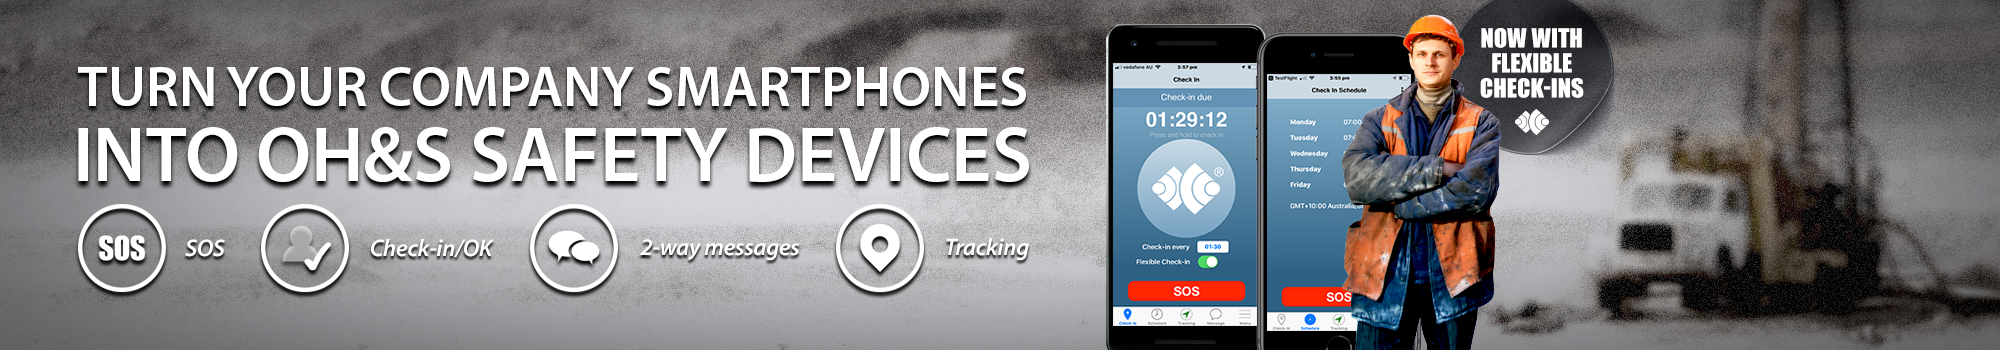 turn your company smartphones into oh&s safety devices. sos. check-in/ok. 2-way messages. tracking. now with flexible check-ins